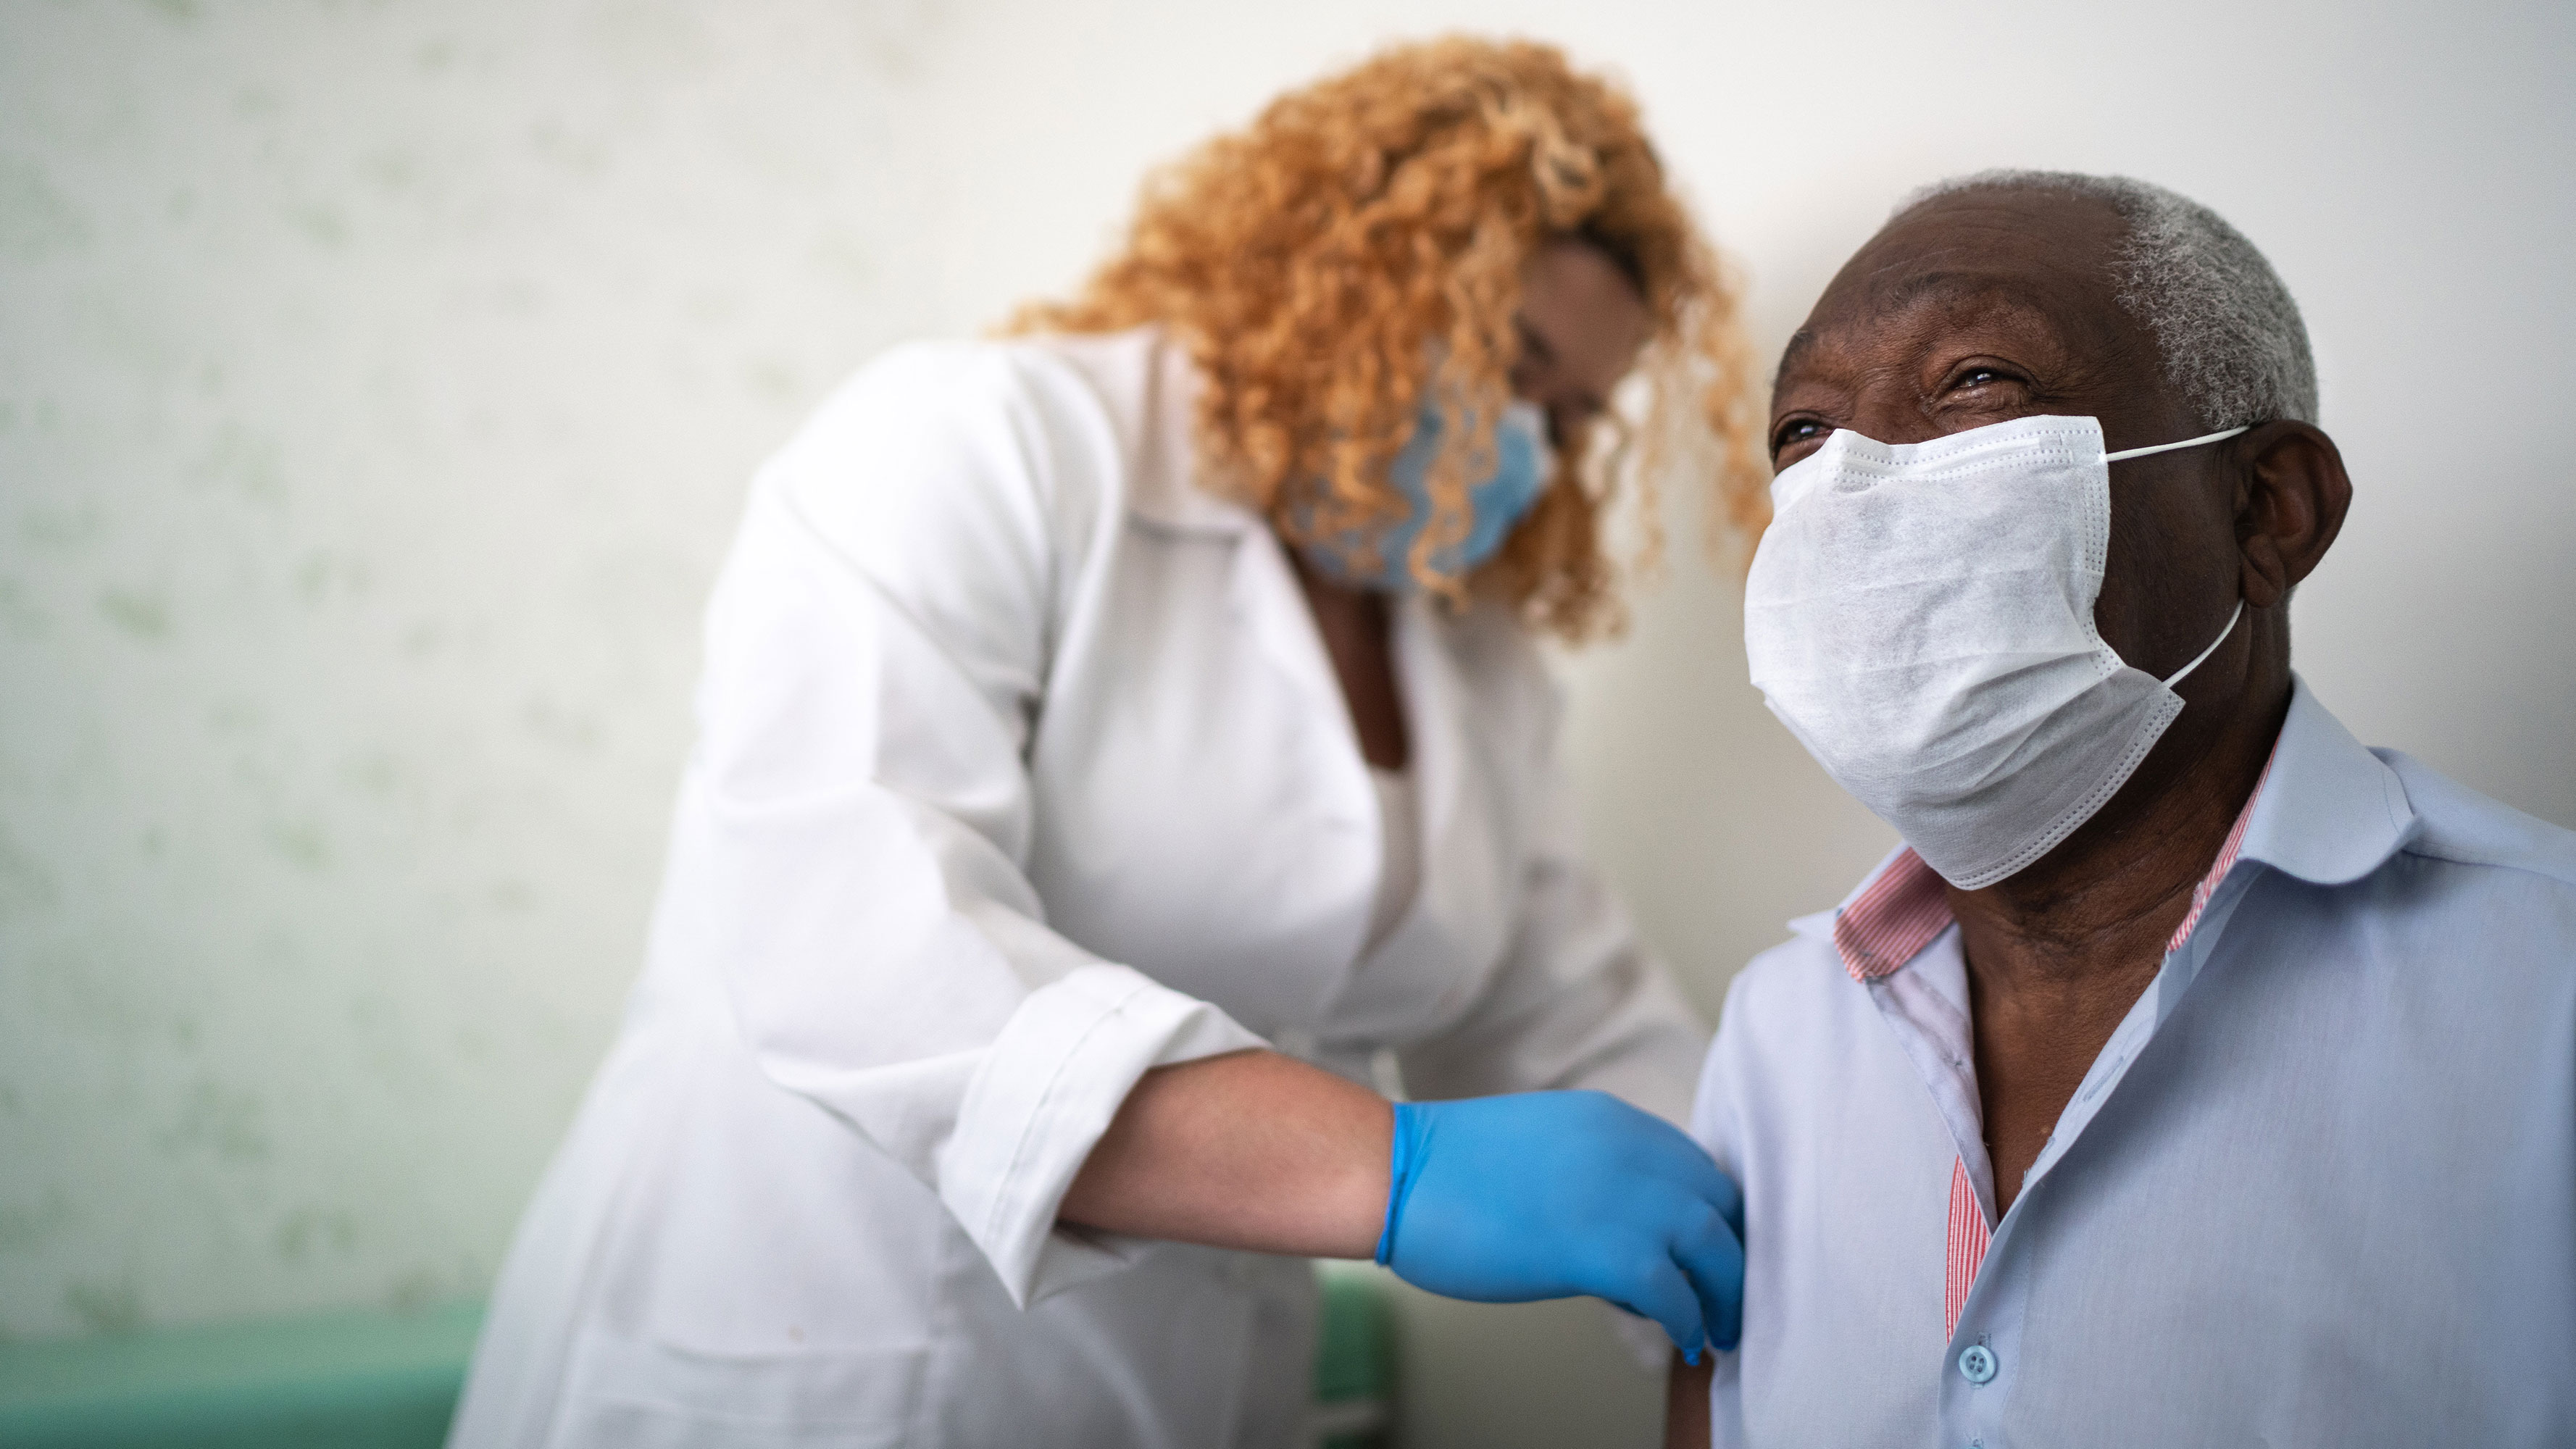 A nurse prepares a patient's arm, both wearing face coverings, for a vaccination